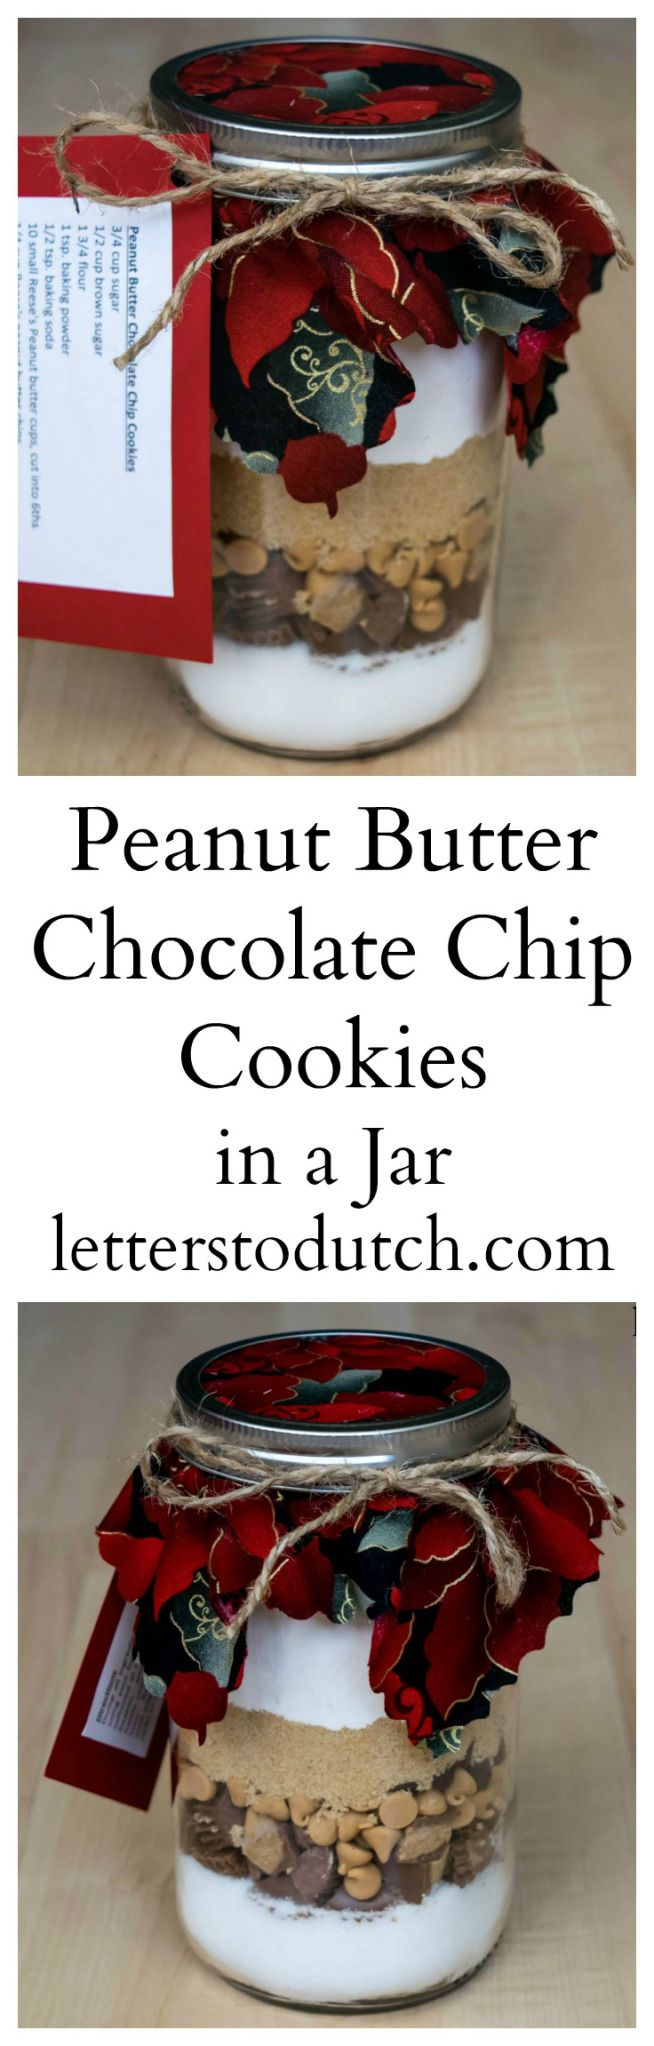 Cookie Jar Gift Tutorial and Free Label Printables at #letterstodutch! #peanut #butter #chocolate #chip #cookies #jar #gift #idea #diy #craft #holiday #recipe #delicious #yummy #easy #homemade